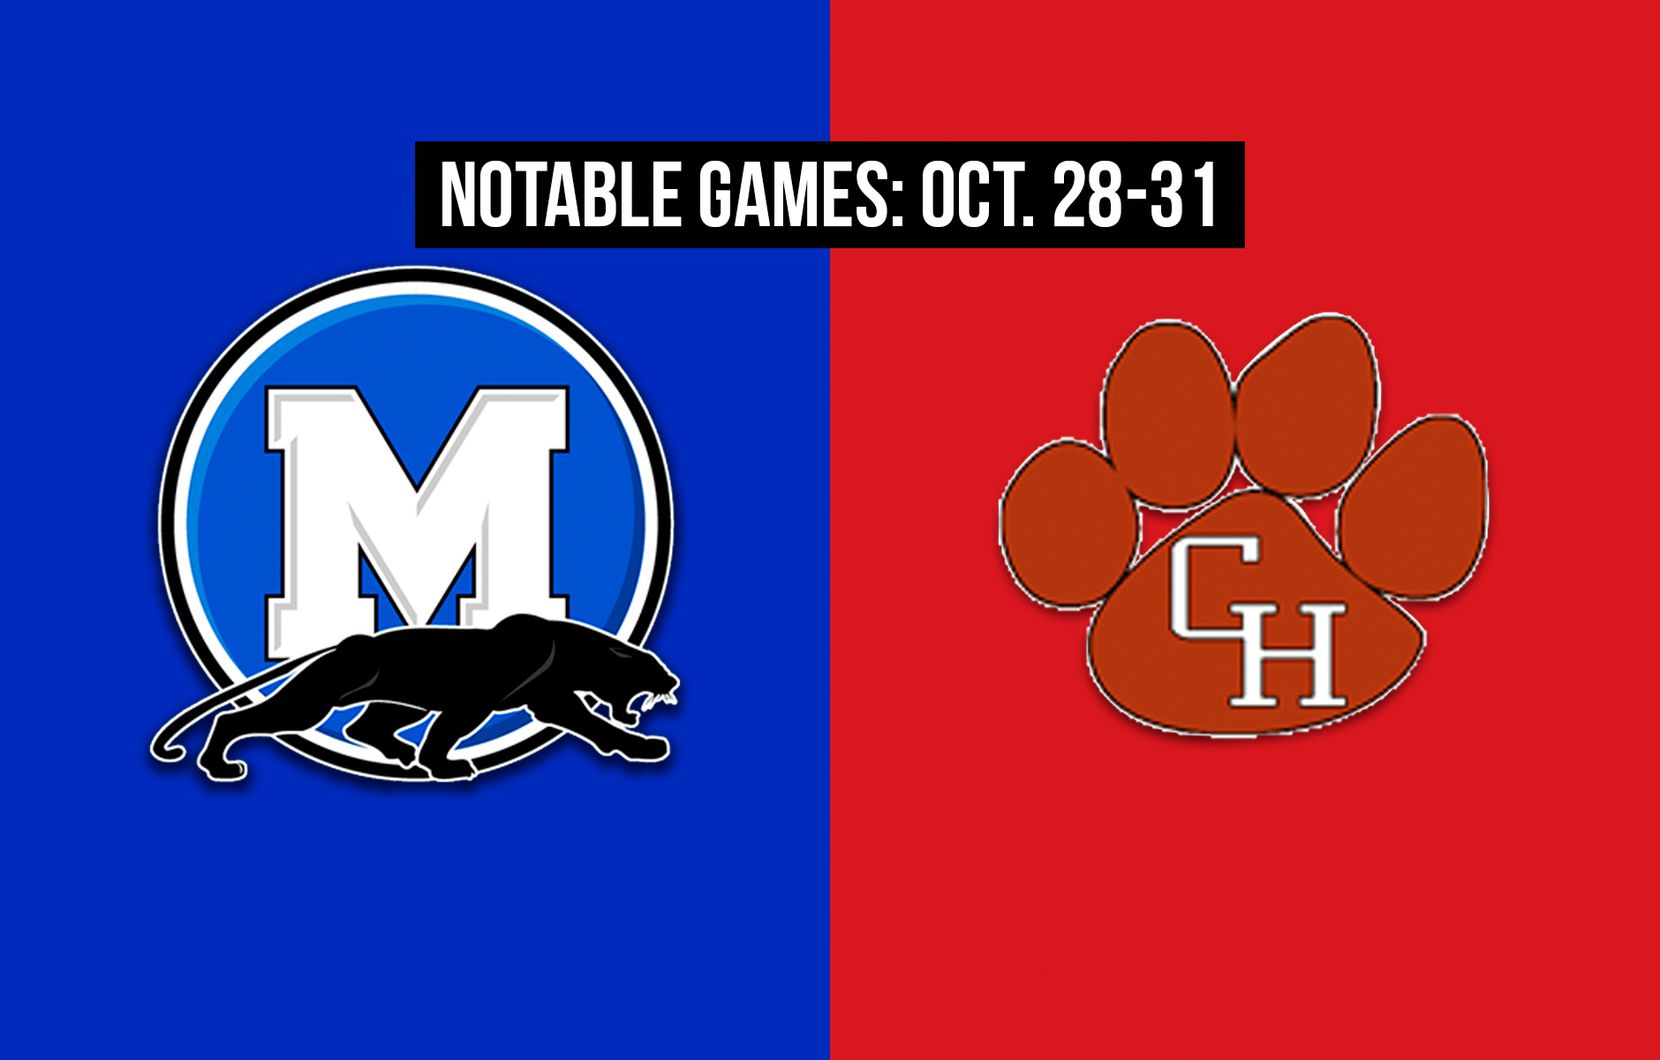 Notable games for the week of Oct. 28-31 of the 2020 season: Midlothian vs. Colleyville Heritage.